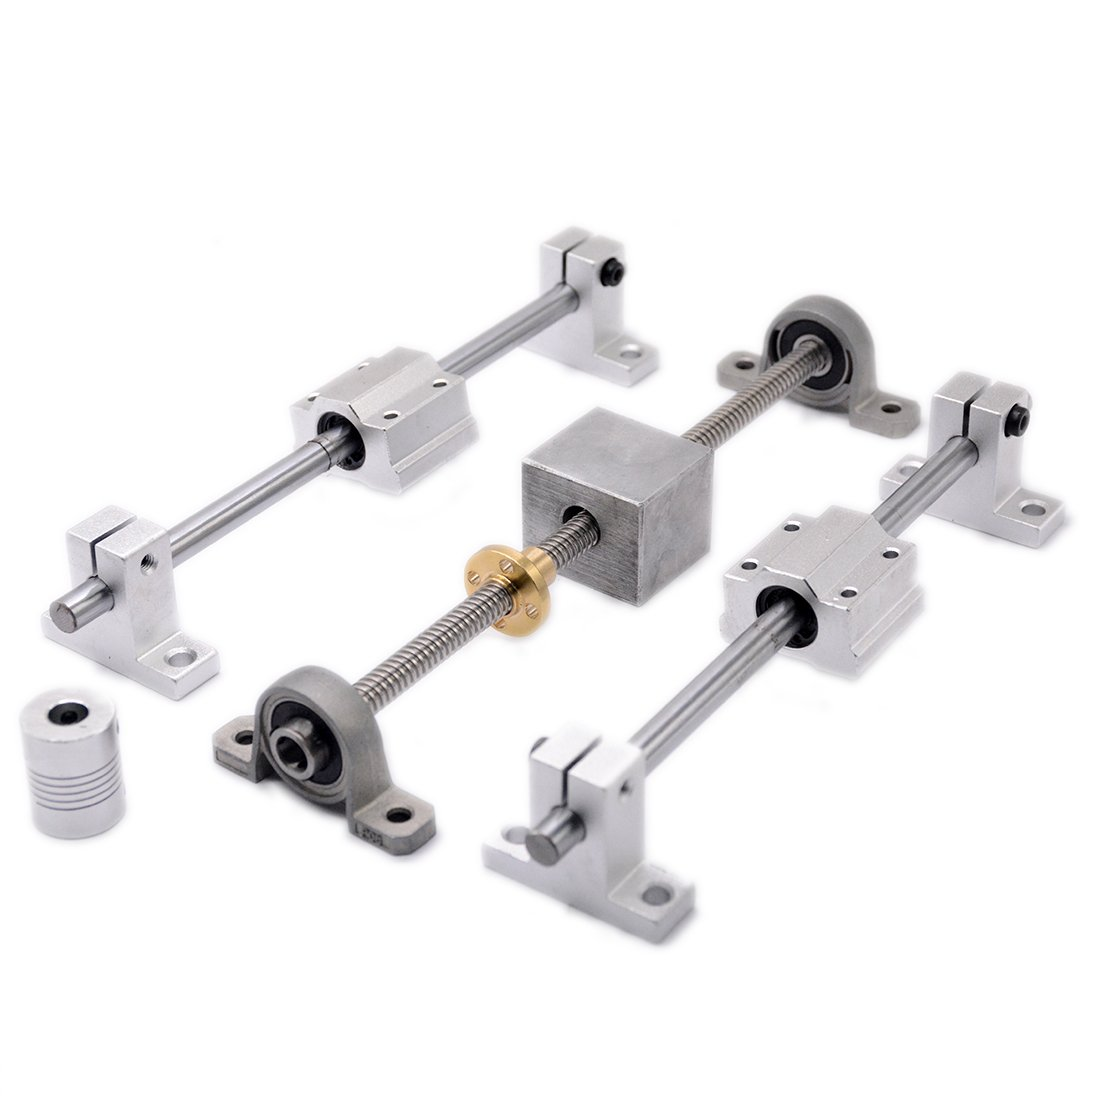 3D Printer Guide Rail Sets T8 Lead Screw Pitch 2mm Lead 8mm Length 200mm + Linear Shaft 8X200mm + KP08 SK8 SC8U + nut housing +D19L25 5x8mm Coupling (200mm) by Ogry (Image #1)